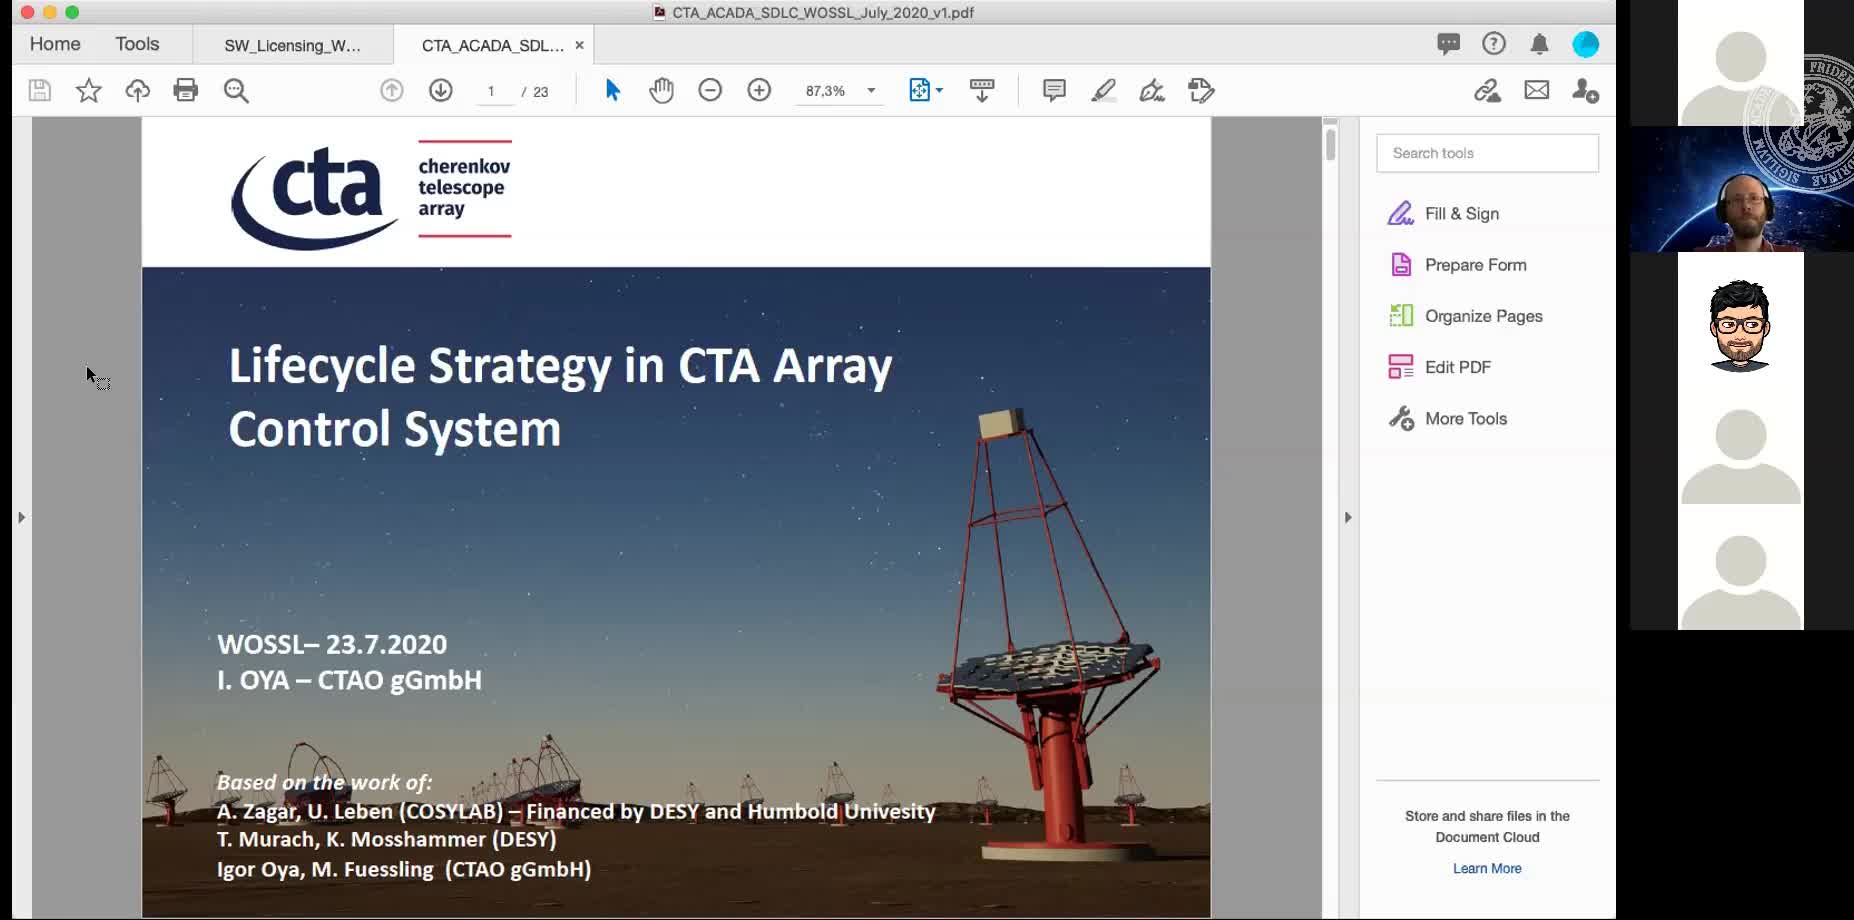 Lifecycle Strategy in CTA Array Control System preview image